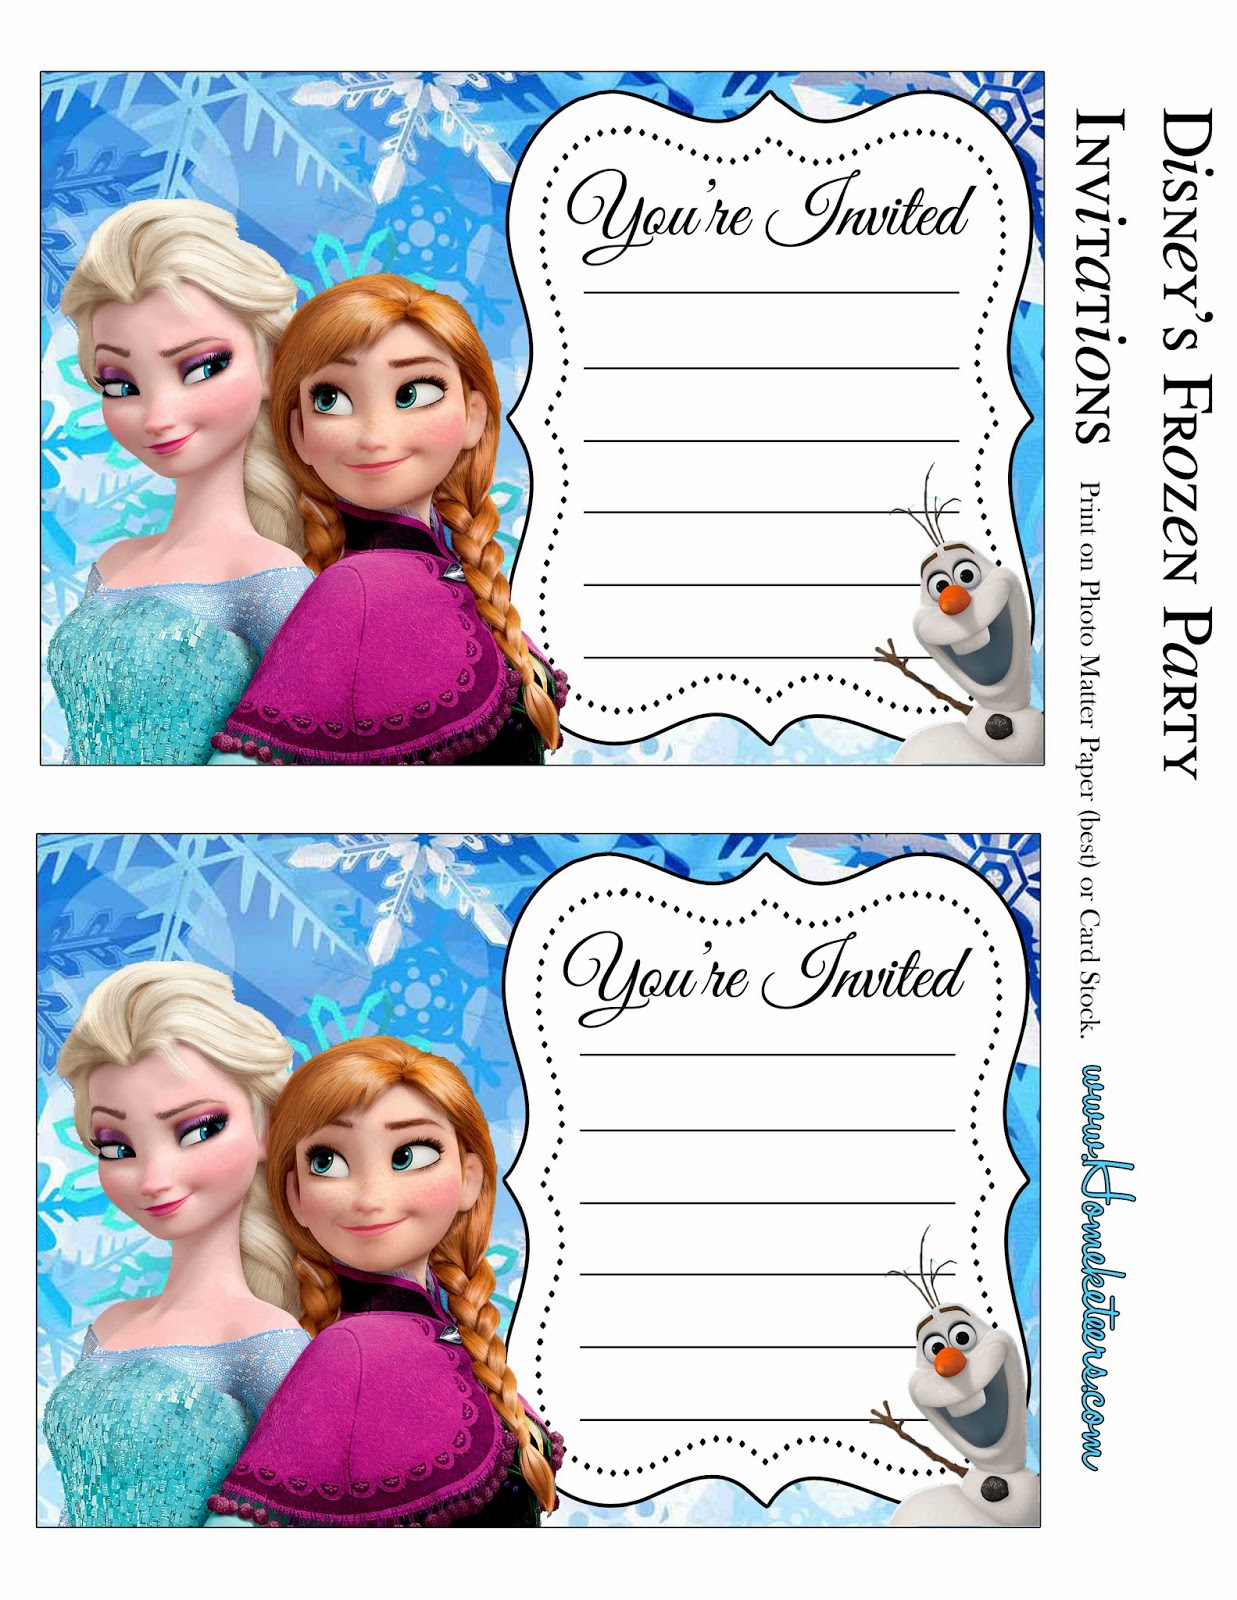 Divine image with regard to frozen invites printable